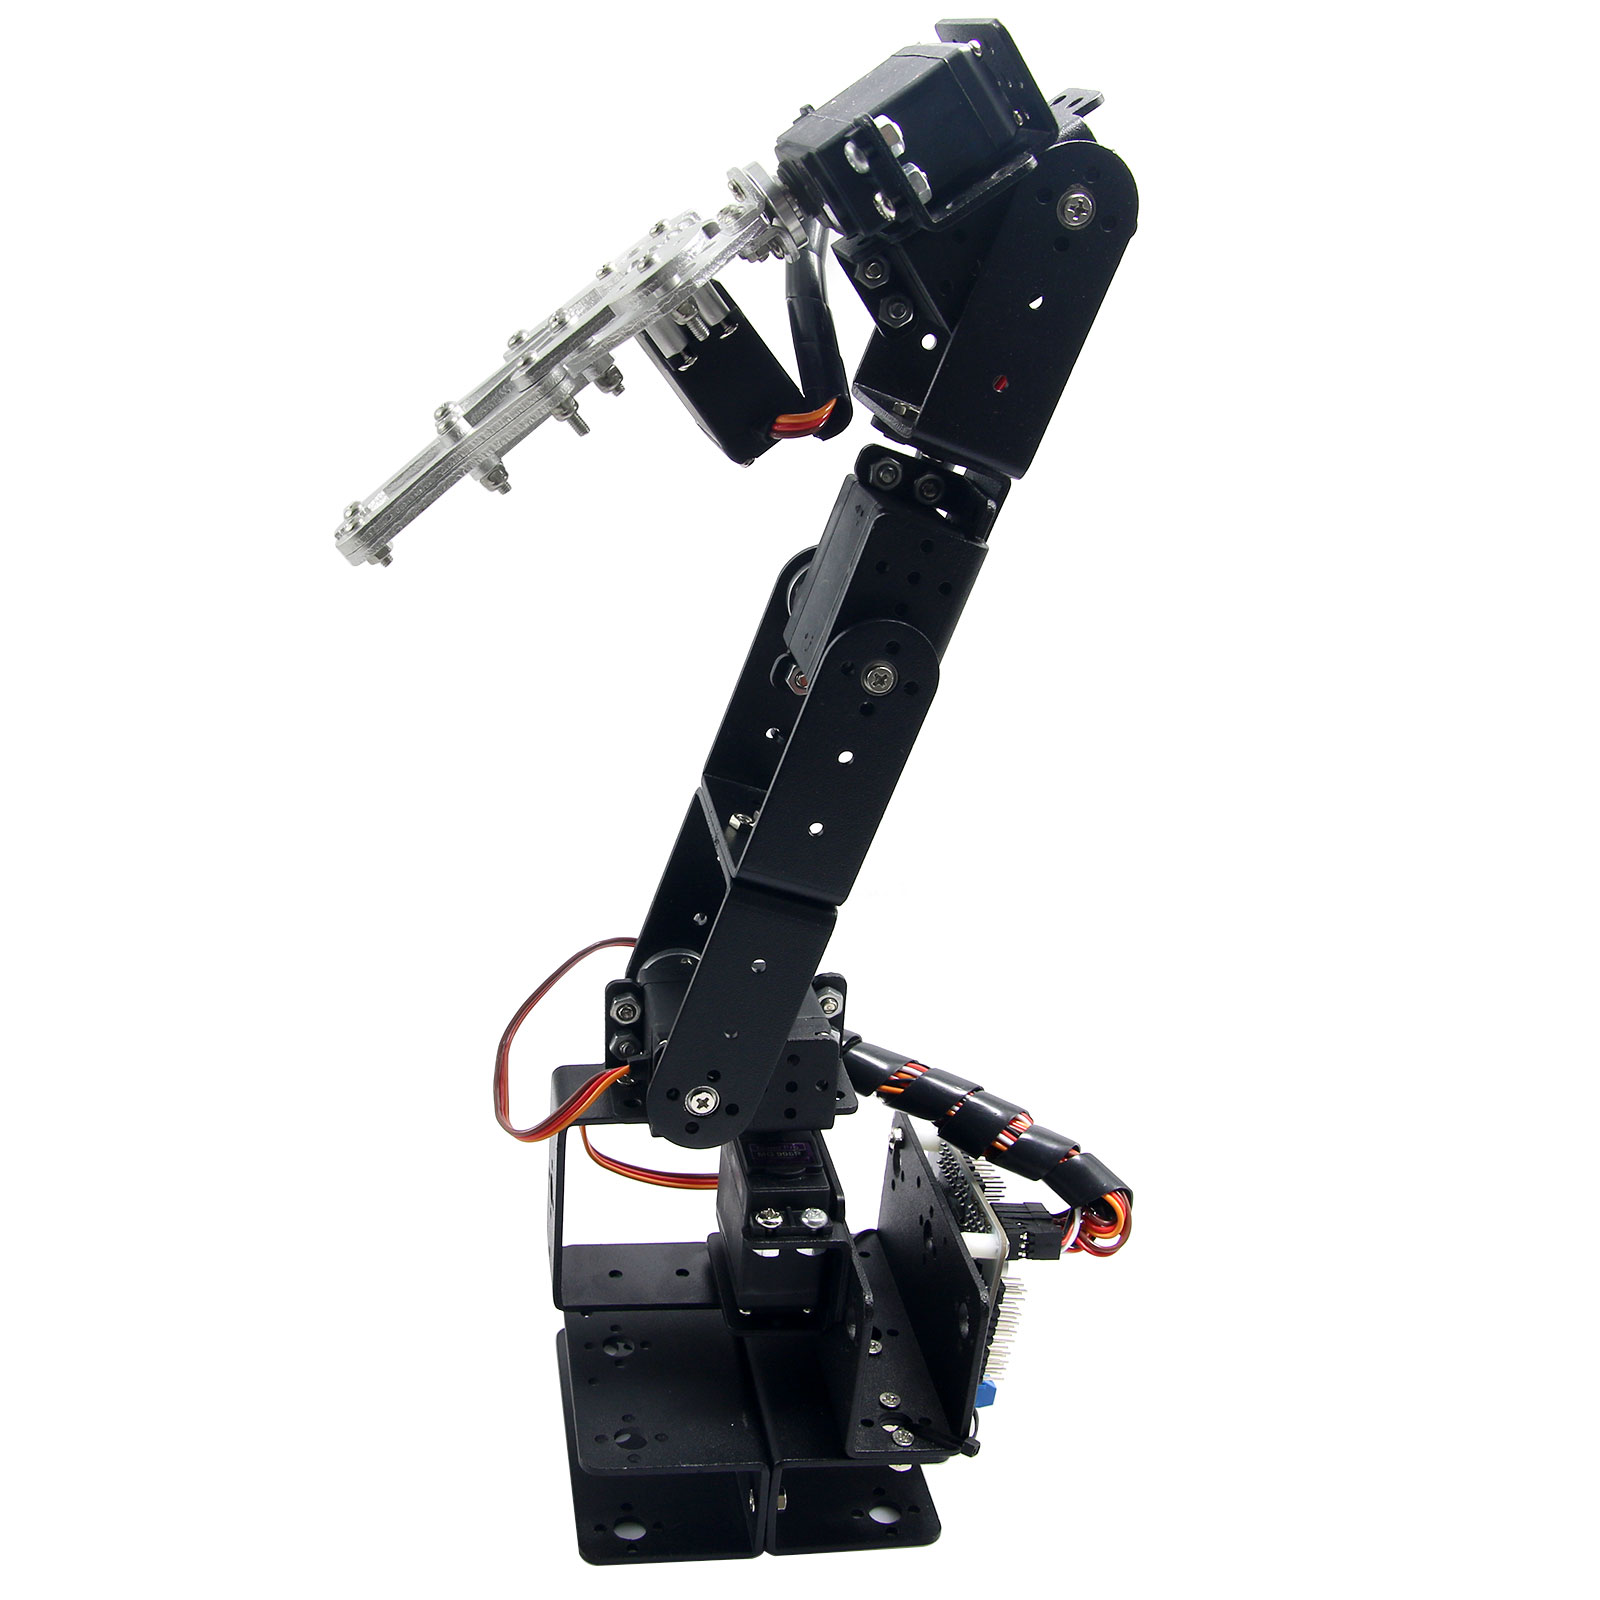 Robot 6 DOF Aluminium Mechanical Robotic Arm Clamp Claw Mount kit & 6pcs Servos & Metal Servo Horn for Arduino 3 dof metal robotic claw gripper robot mechanical claw compatible with ld 1501mg digital servo ldx 335 single axis digital servo